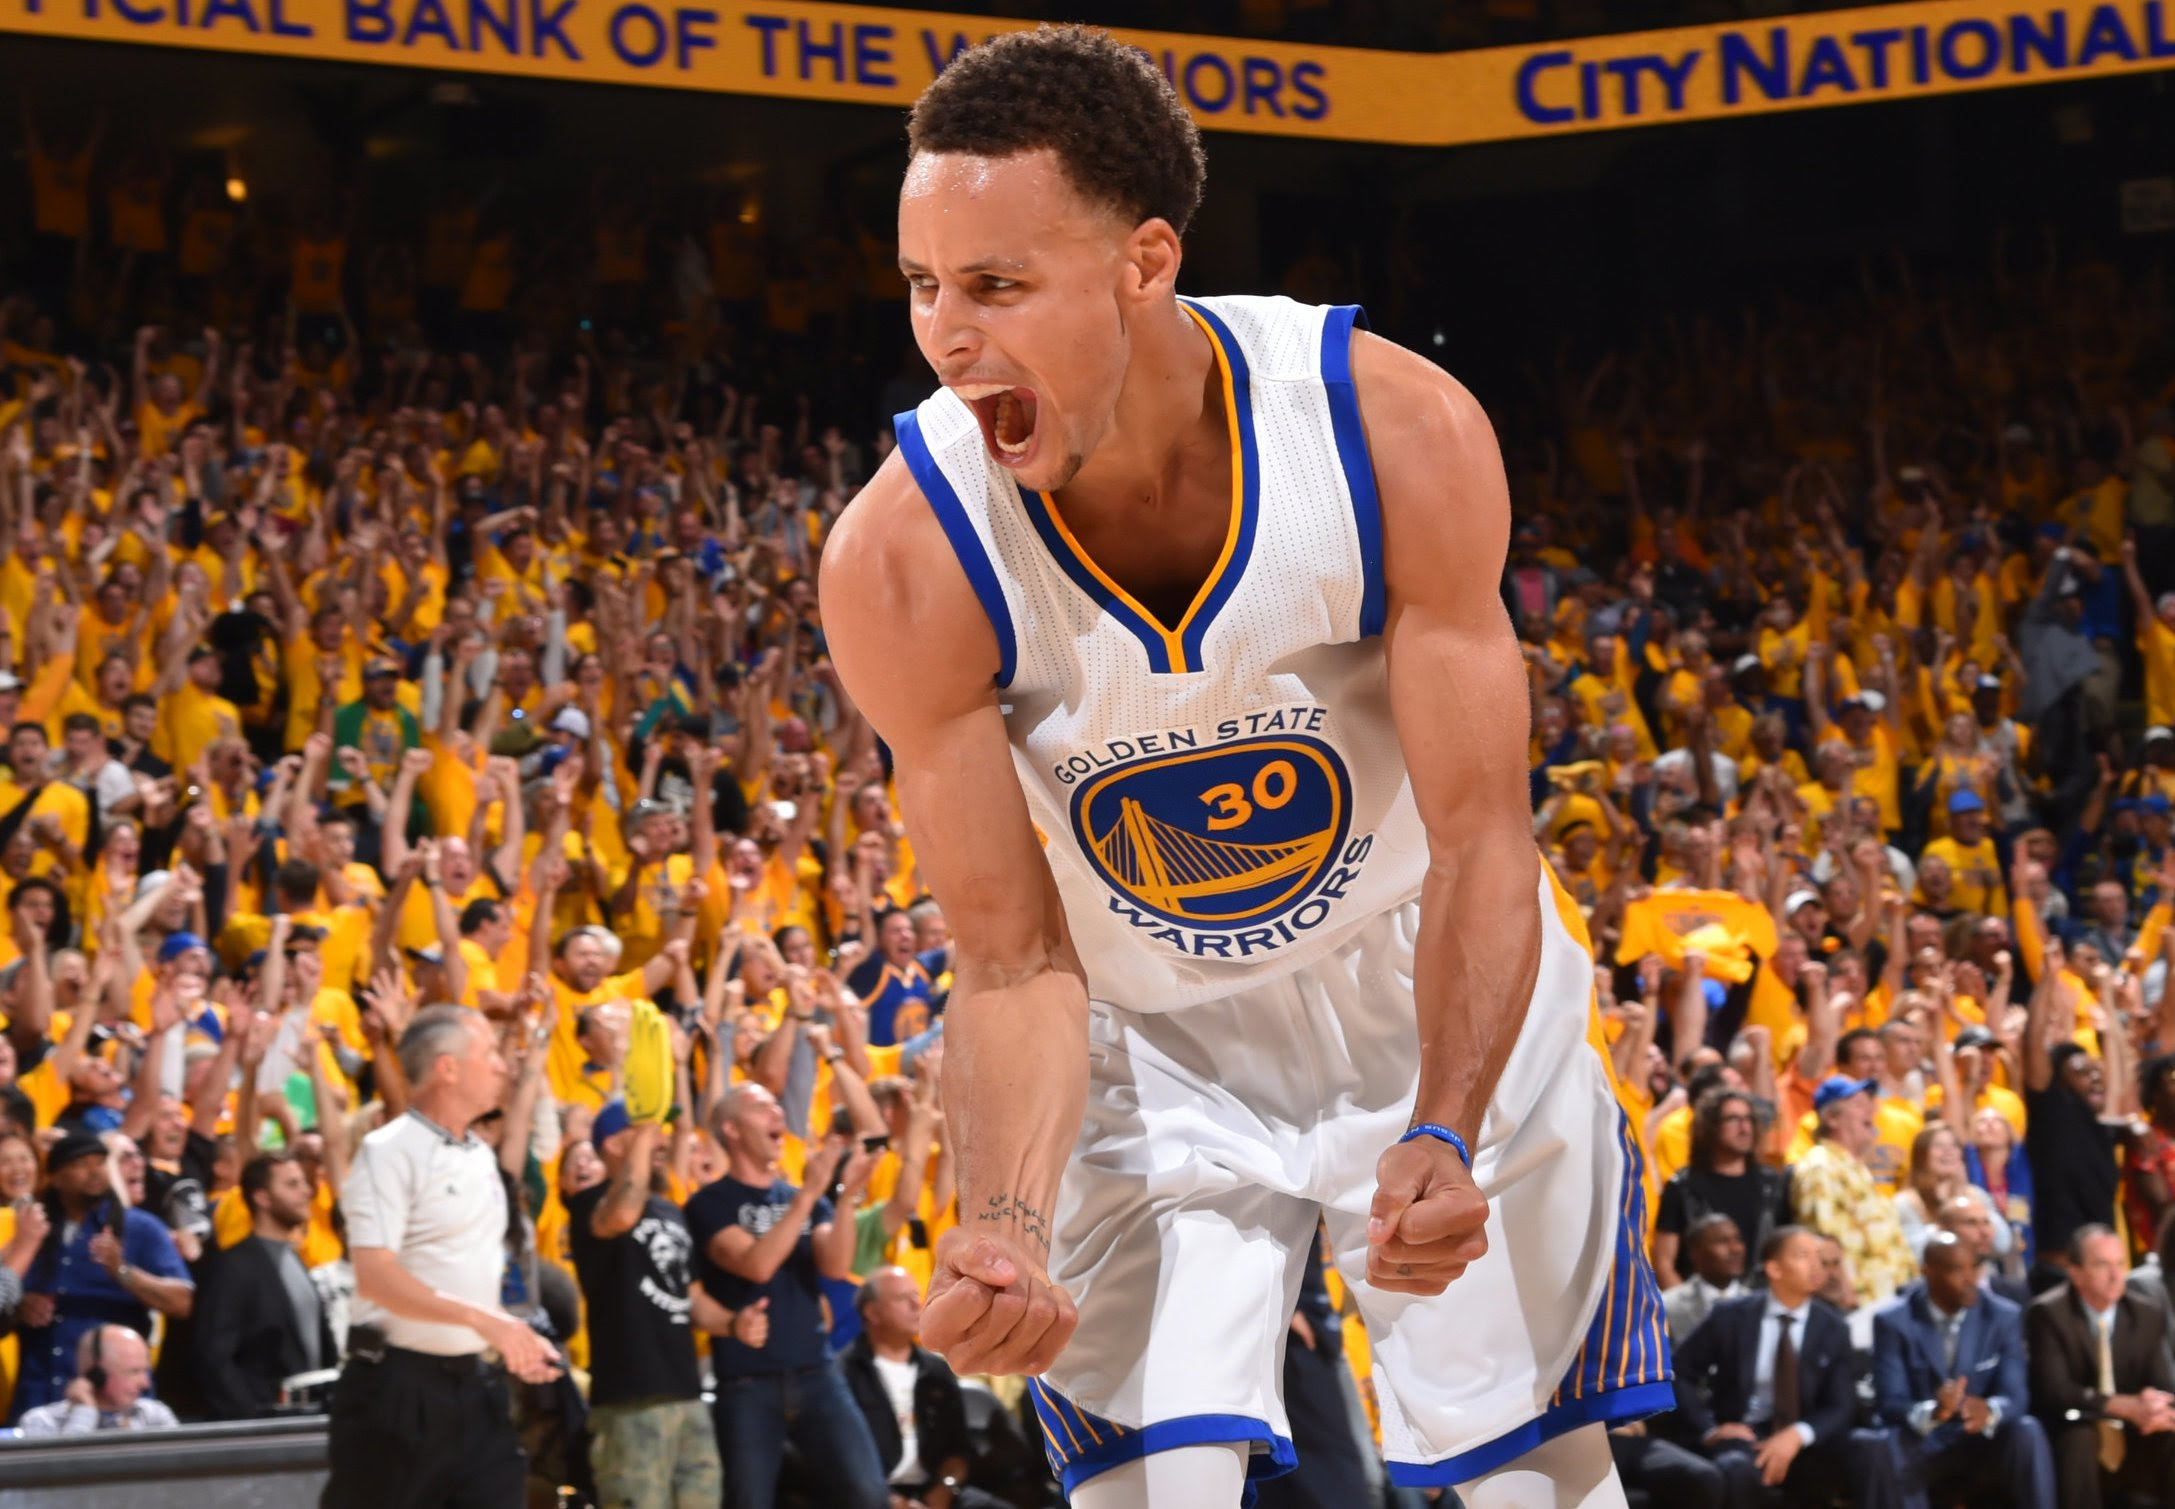 Stephen Curry Wallpapers High Resolution and Quality Download 2175x1509